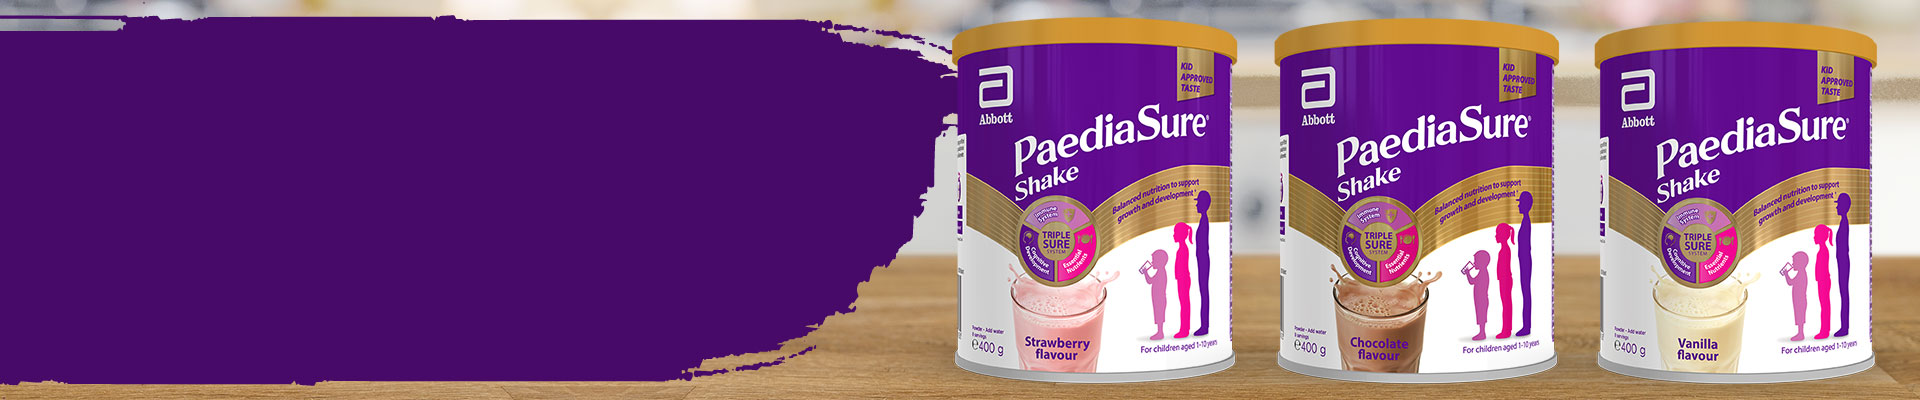 PaediaSure Shake powder flavours